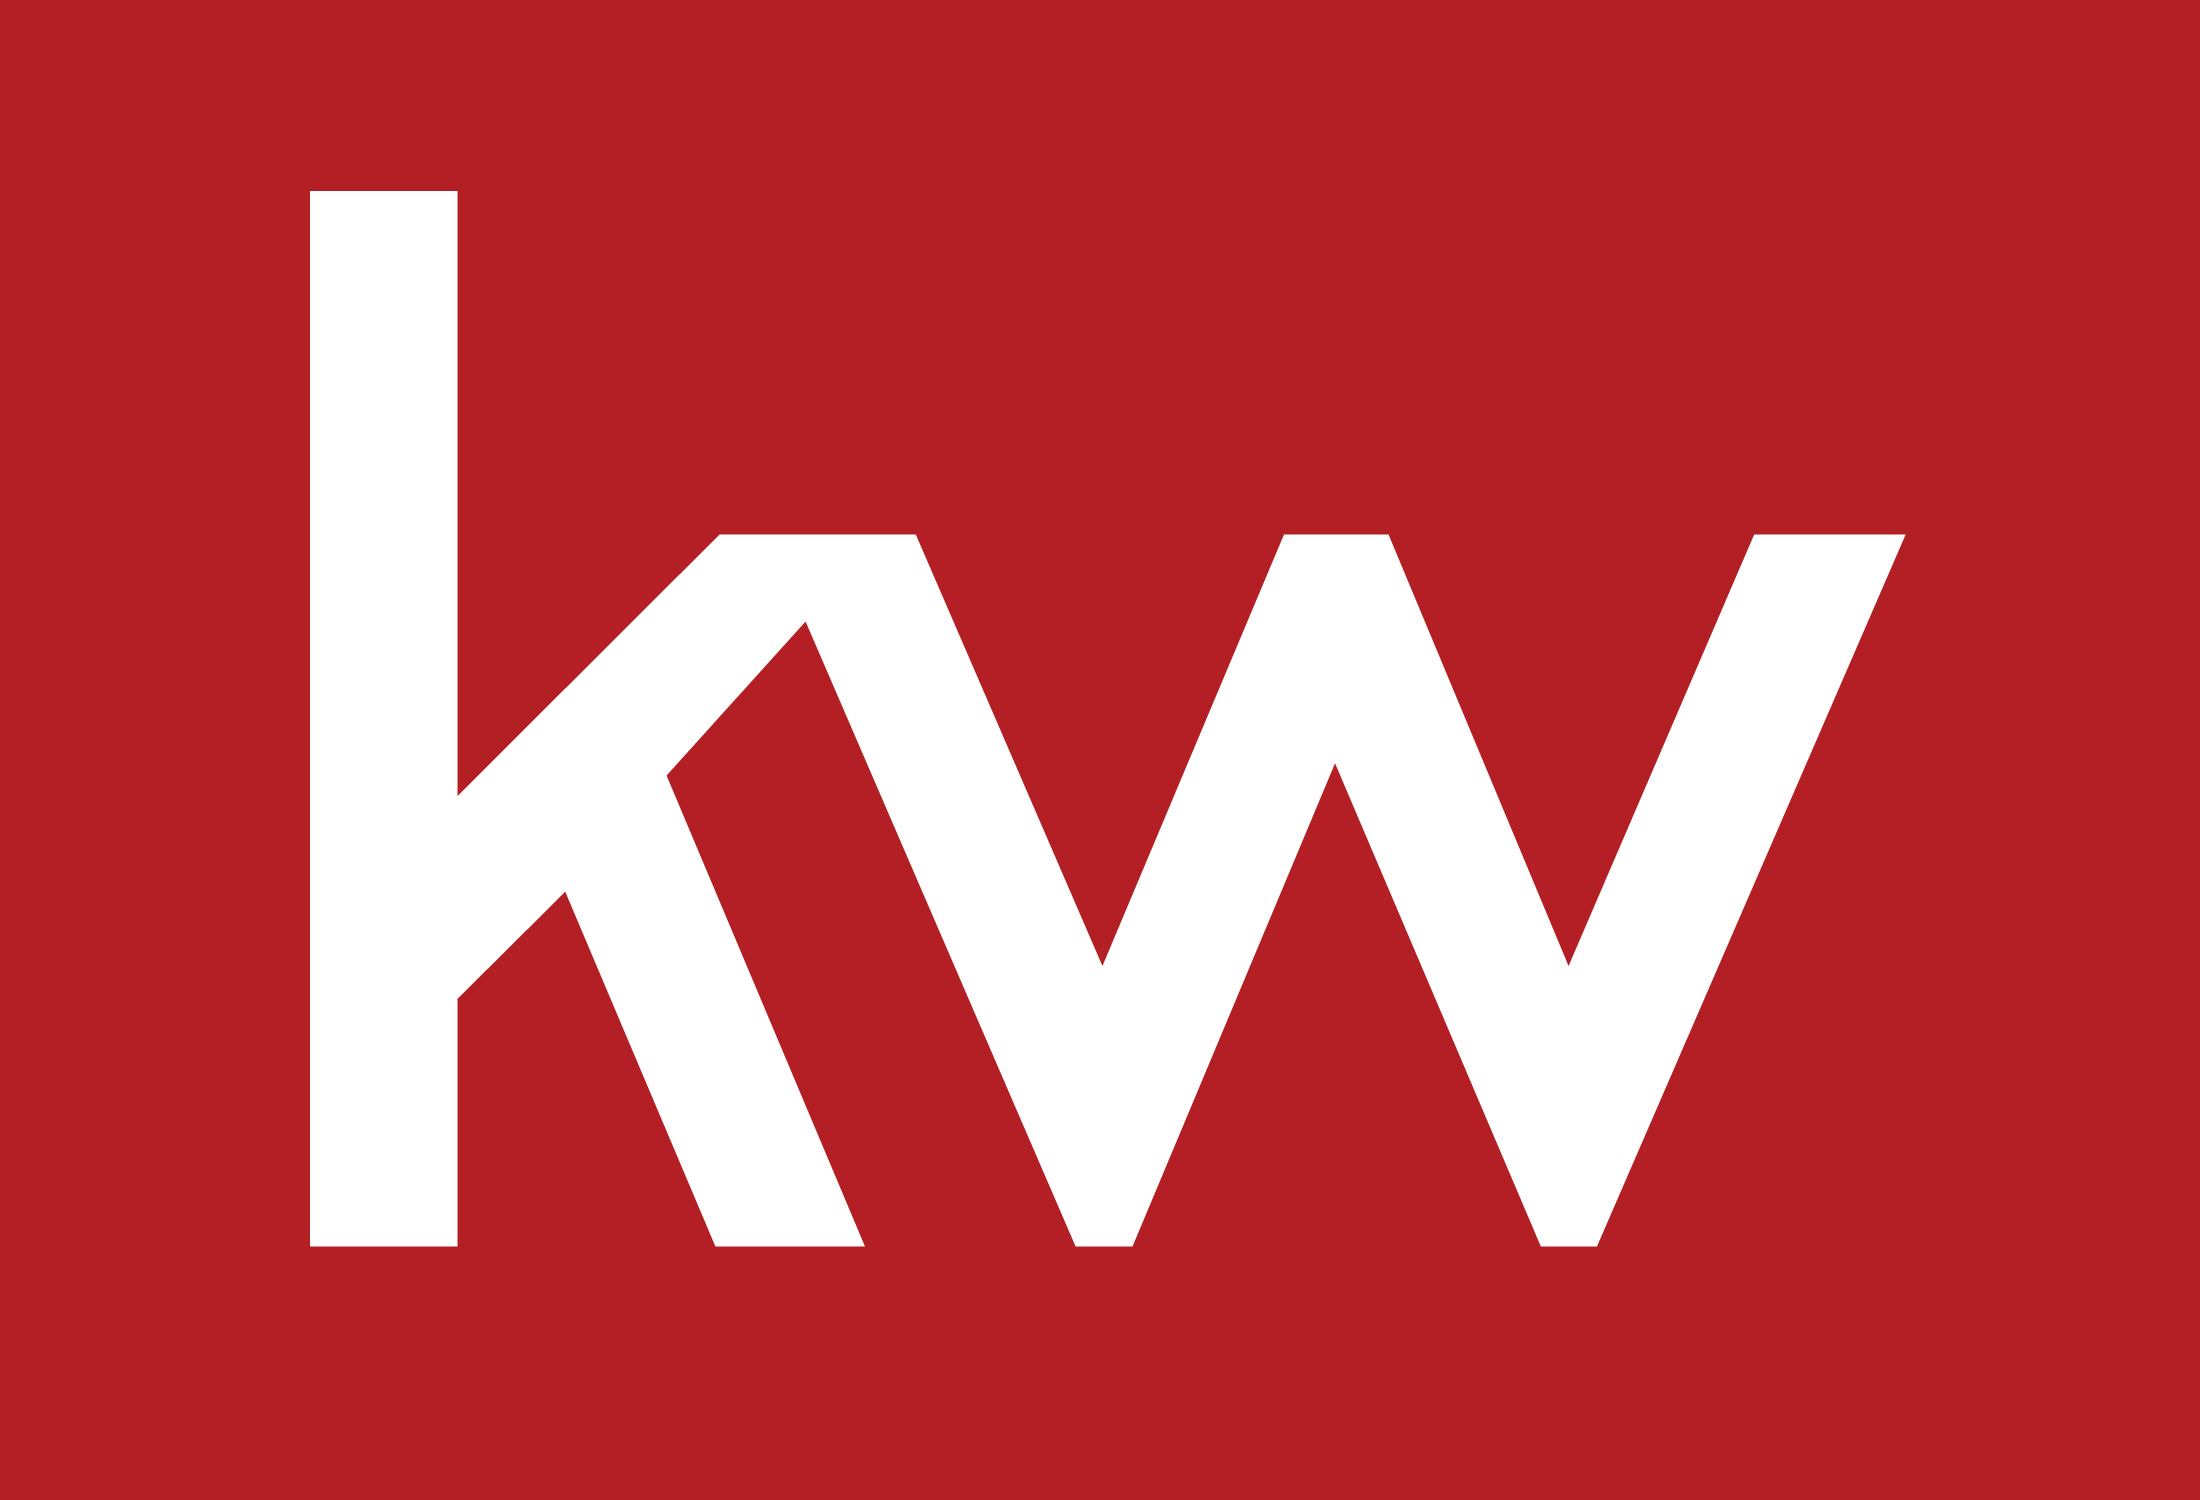 keller williams logo keller williams symbol meaning history and rh 1000logos net kw keller williams logo vector kw keller williams logo vector